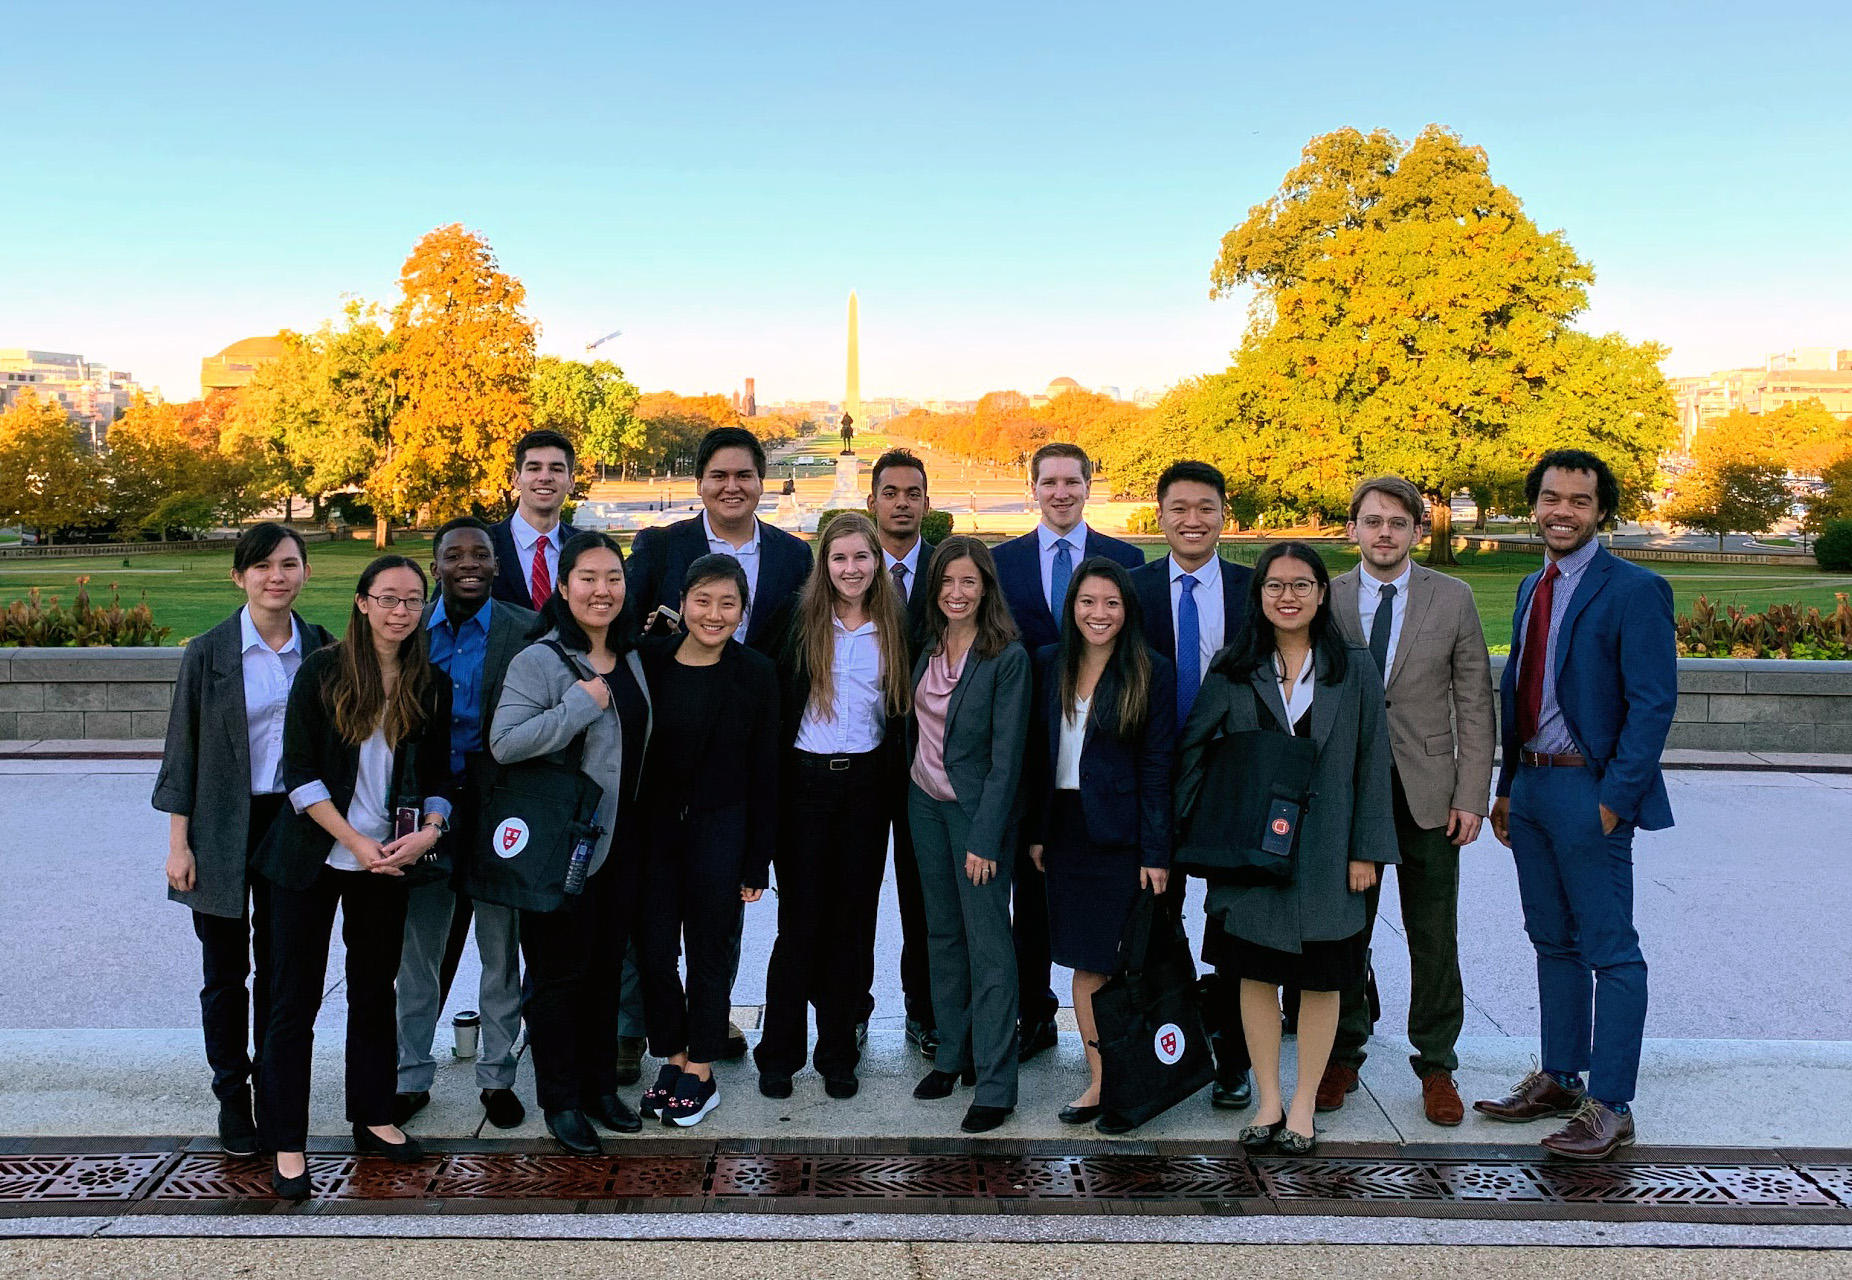 Chemistry students and teachers pose in their suits for a photo on the National Mall, the Washington monument like a glowing needle in the background